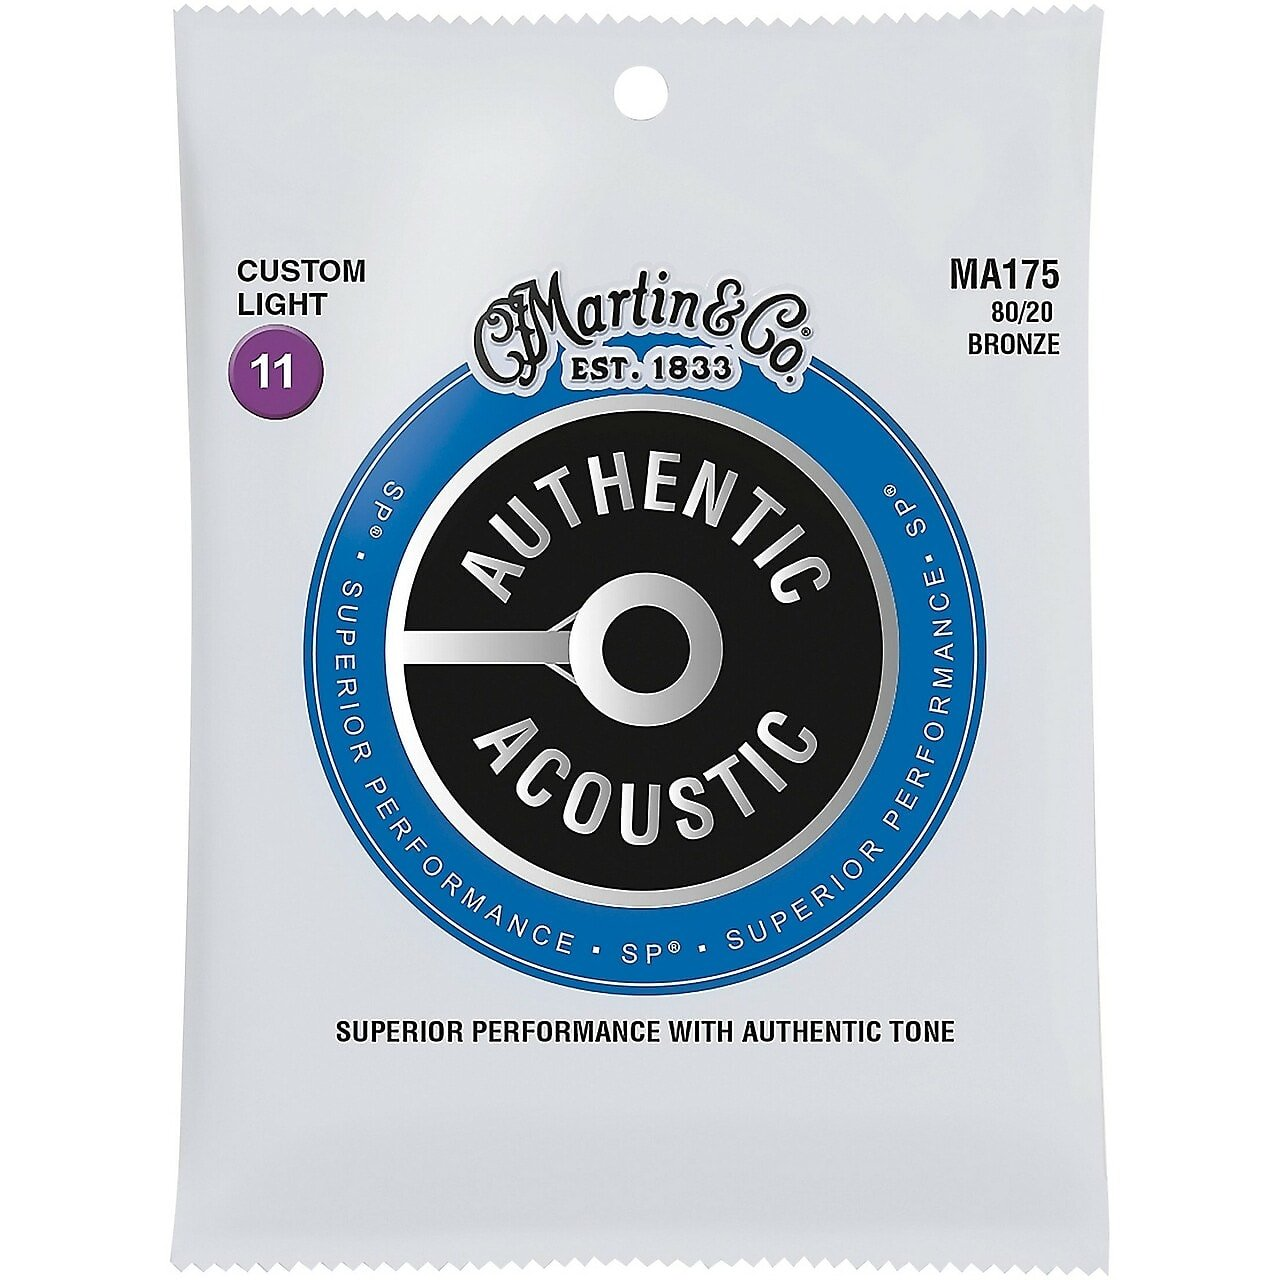 Martin Acoustic Custom Light 80/20